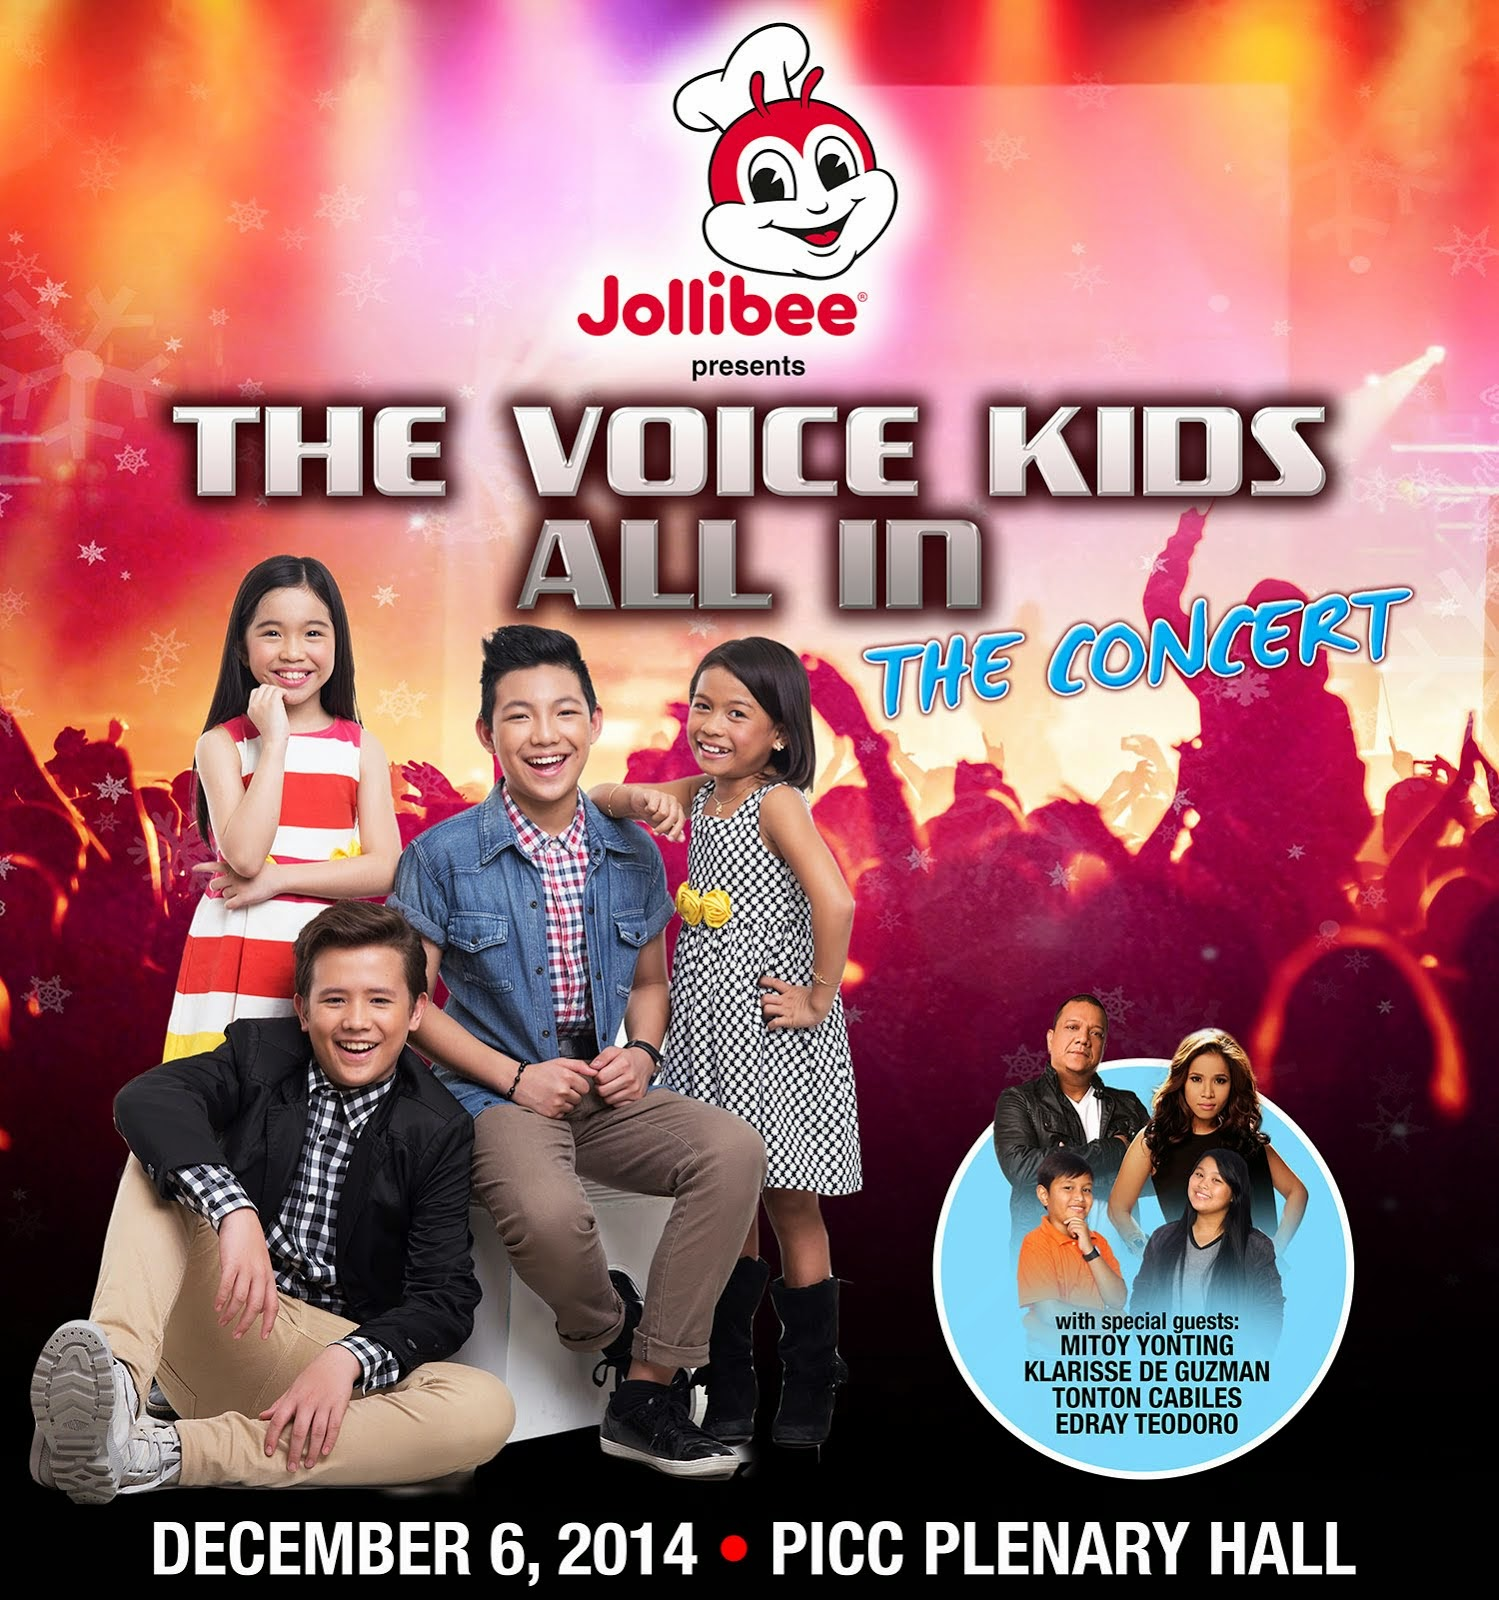 THE VOICE KIDS ALL IN CONCERT